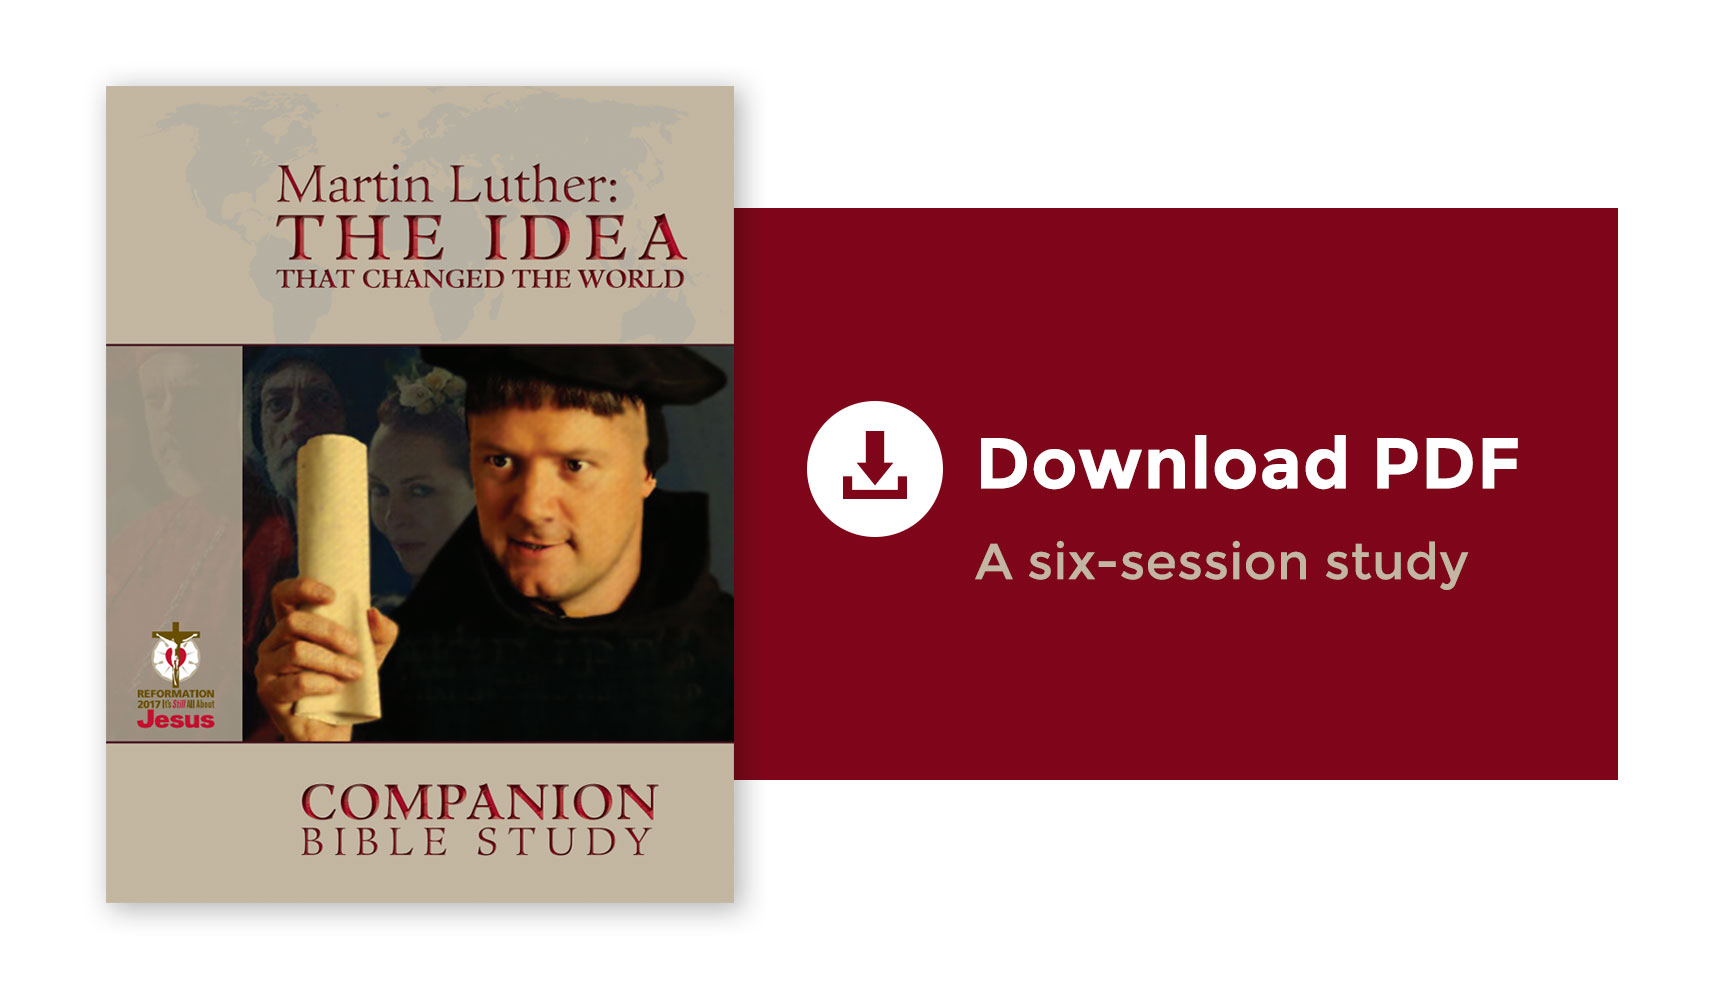 Martin Luther: The Idea That Changed the World Companion